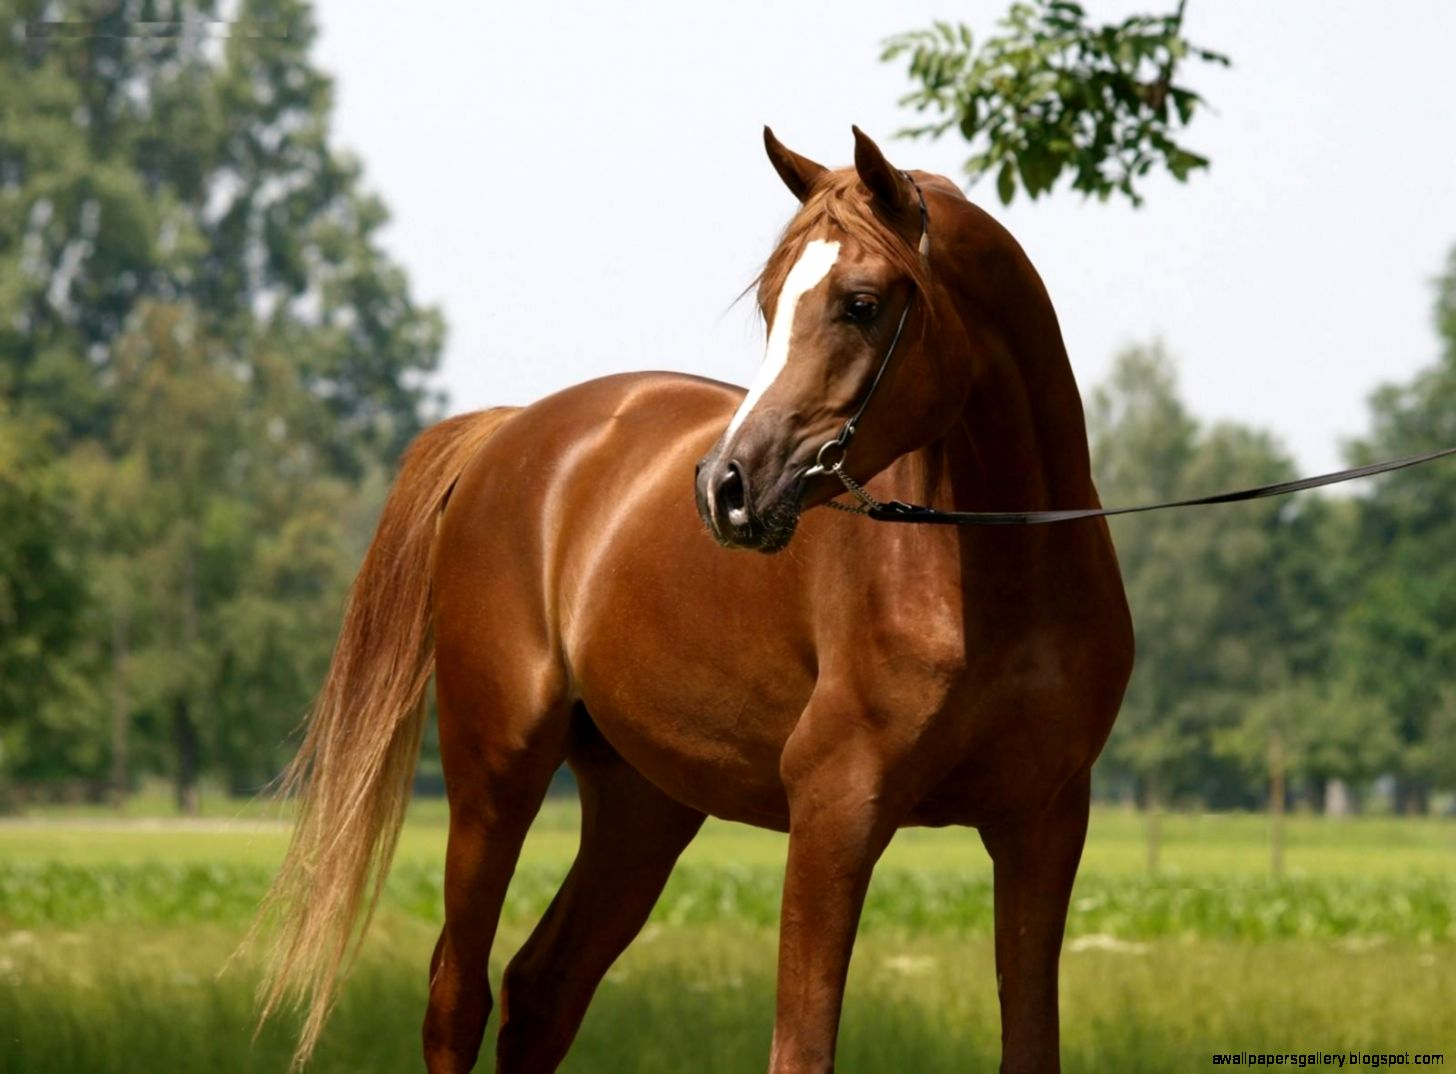 Chestnut horse wallpapers - photo#3